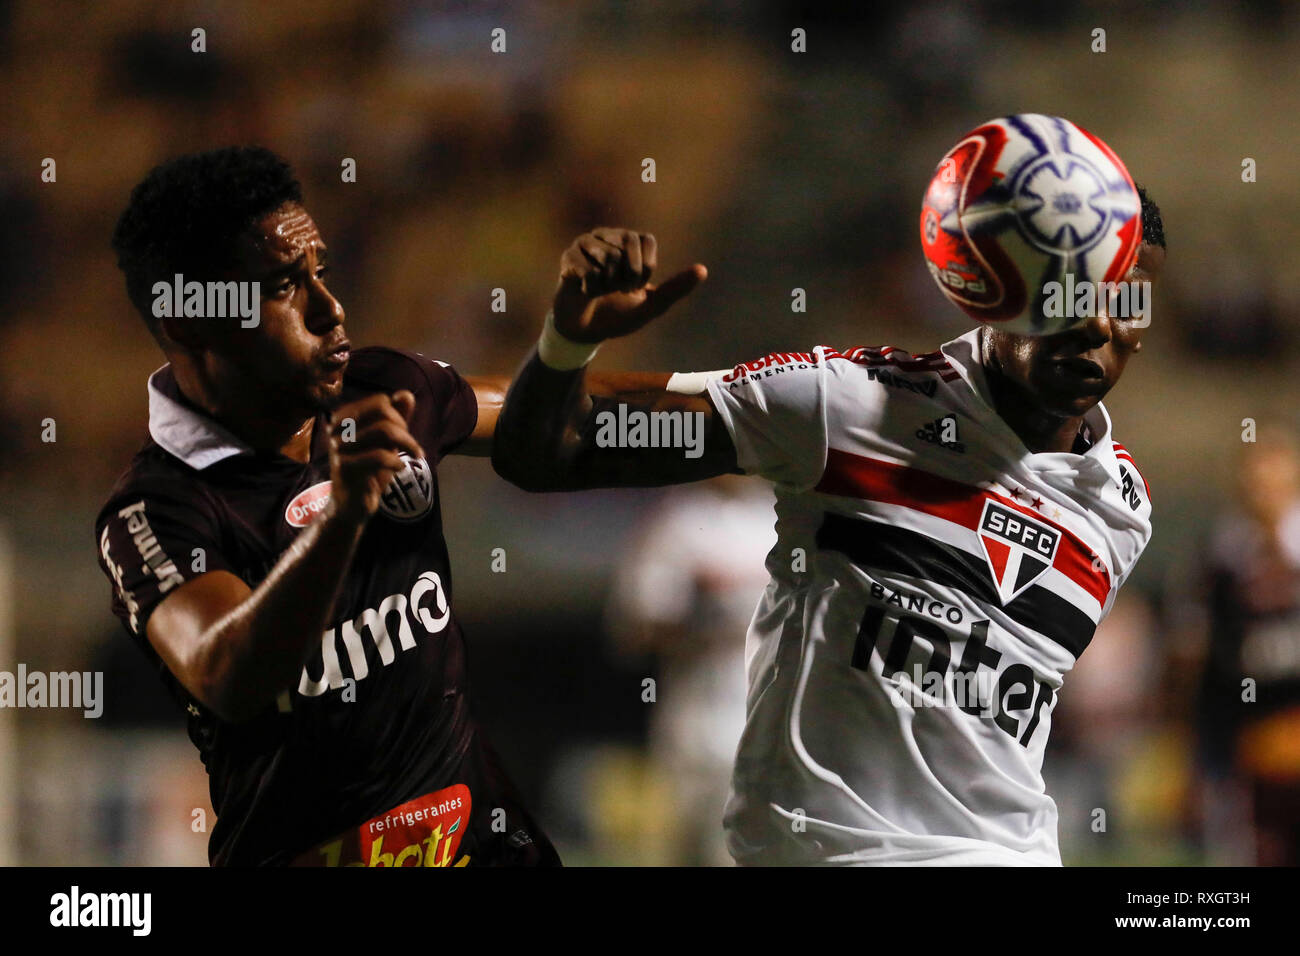 São Paulo, Brazil. 9th March 2019. - Arboleda during match between São Paulo FC x Ferroviária, valid for the 10th round of the Paulista Championship 2019 and held at the Estádio do Pacaembu in São Paulo, SP. (Photo: Ricardo Moreira/Fotoarena) Credit: Foto Arena LTDA/Alamy Live News Stock Photo